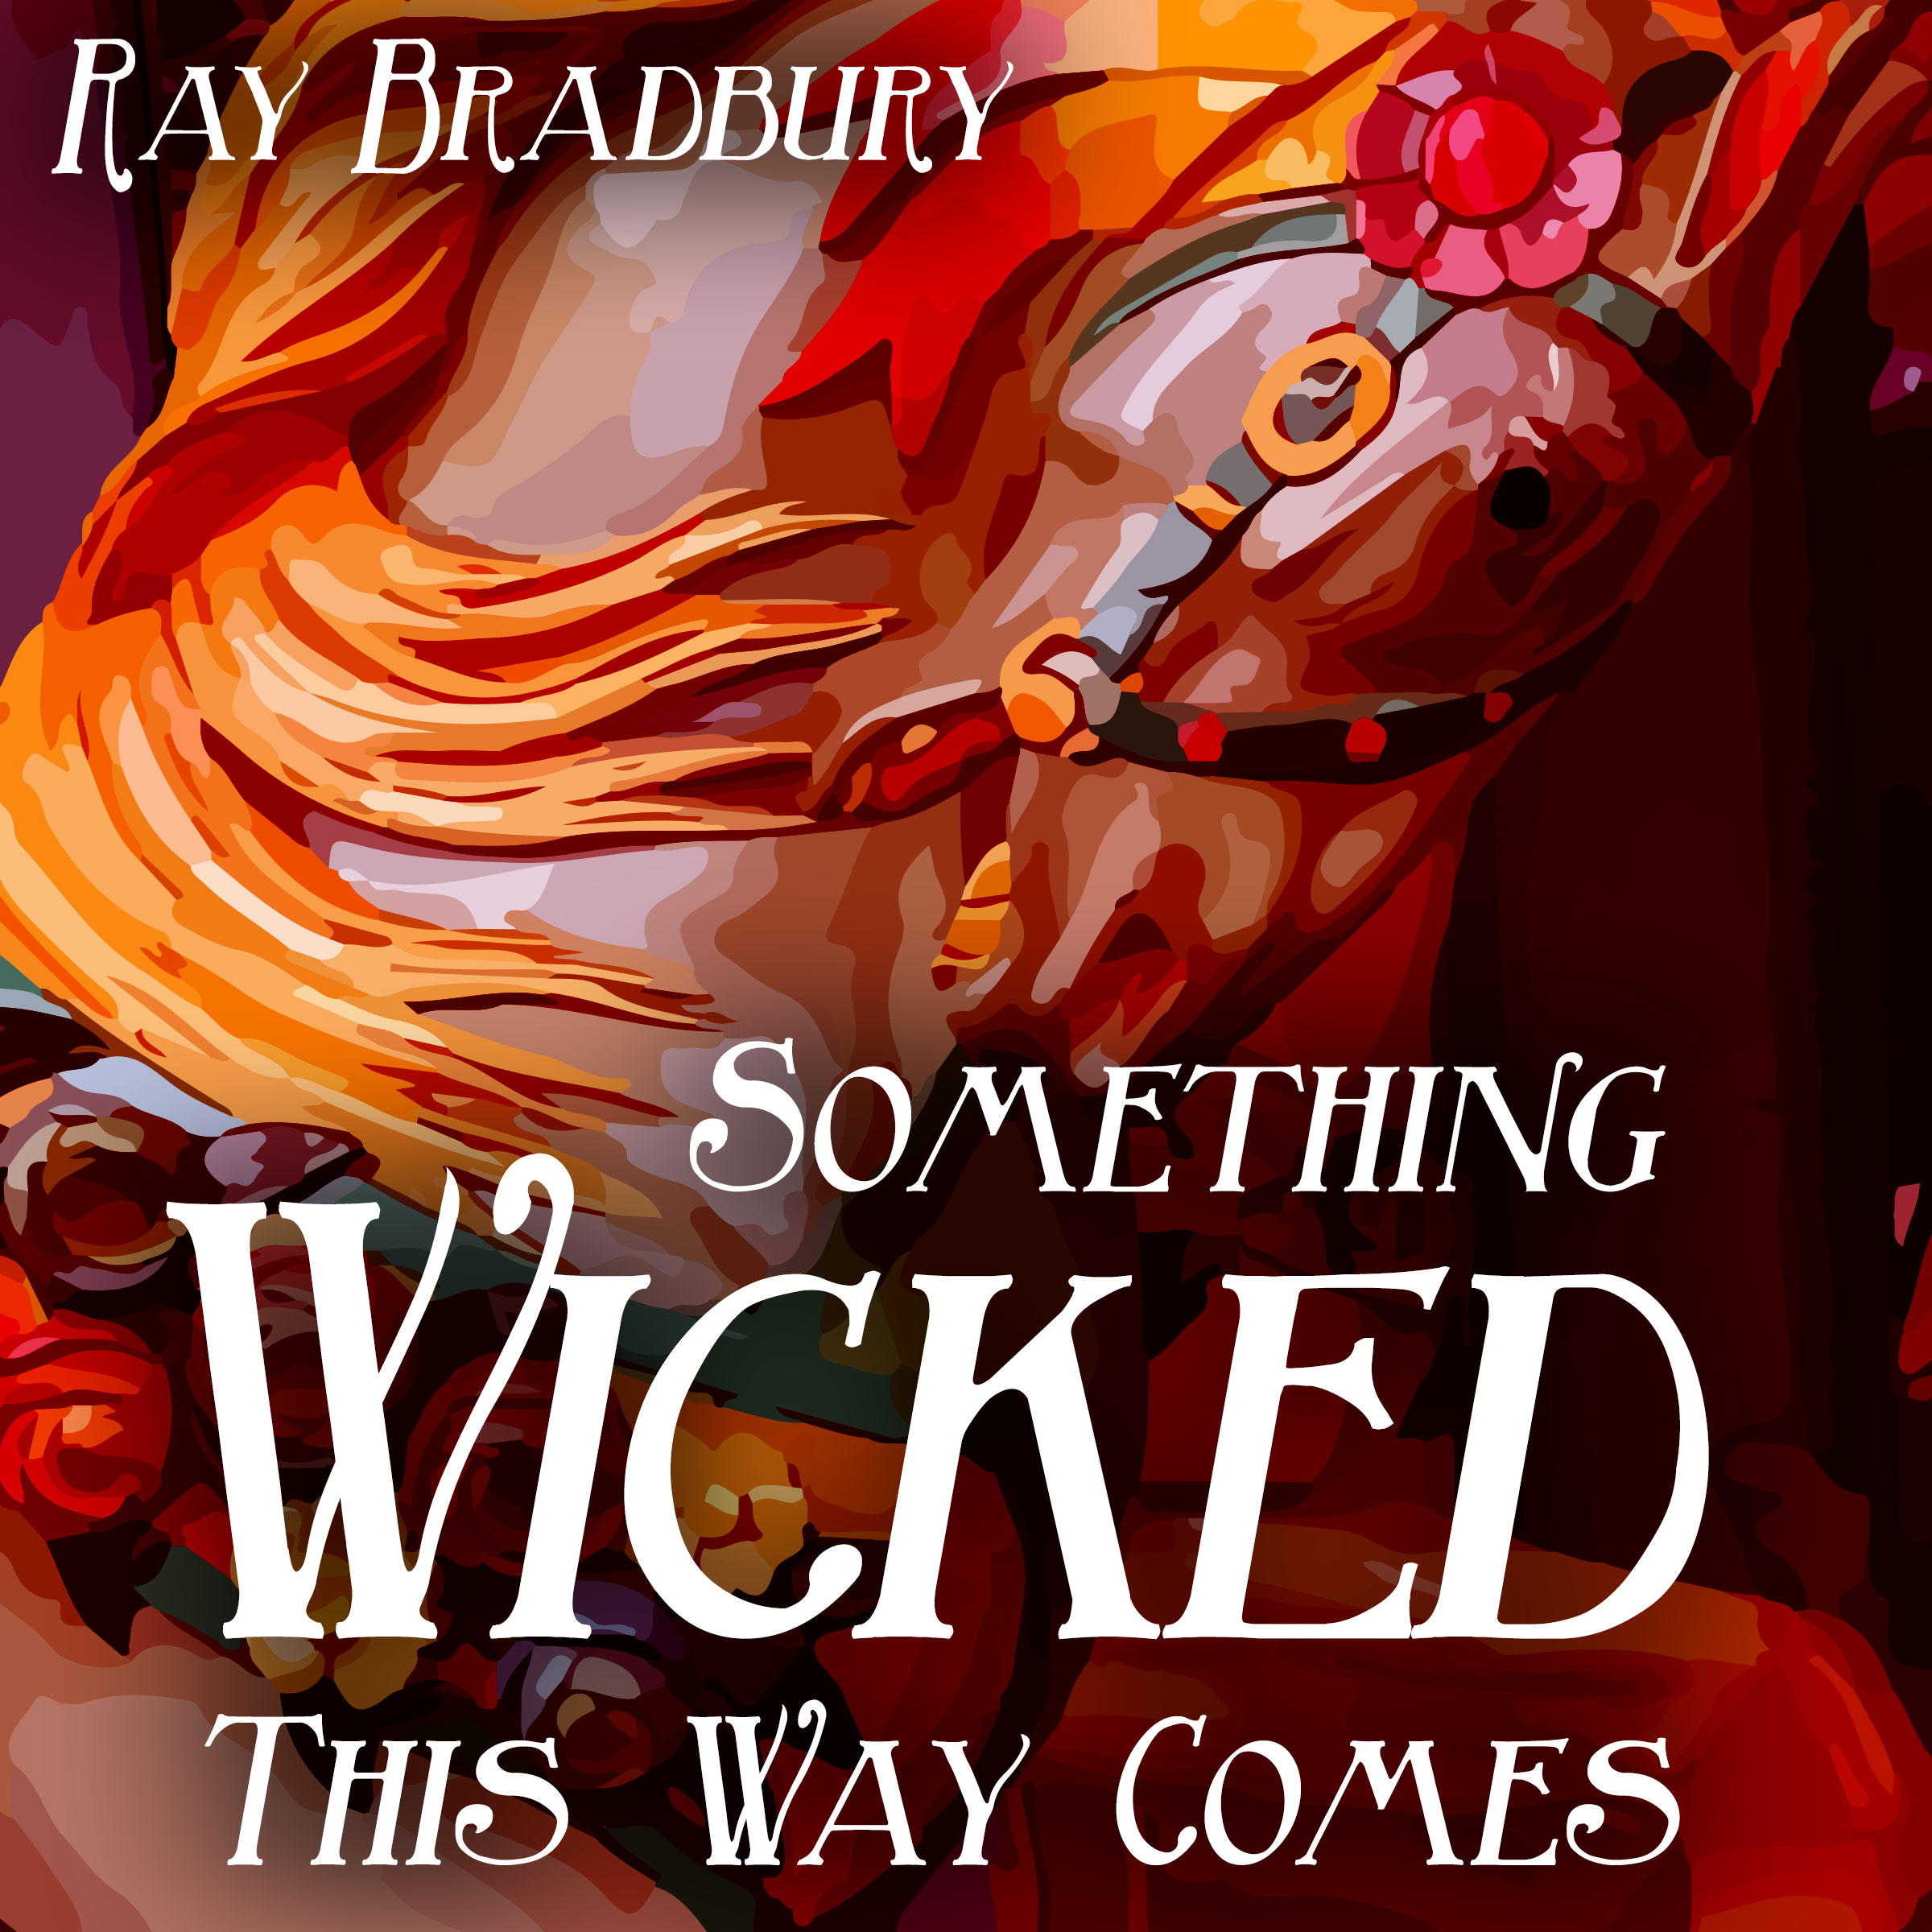 ADBLCRE-3712-Create-Covers-Ray-Bradbury-Something-Wicked-This-Way-Comes-4.jpg